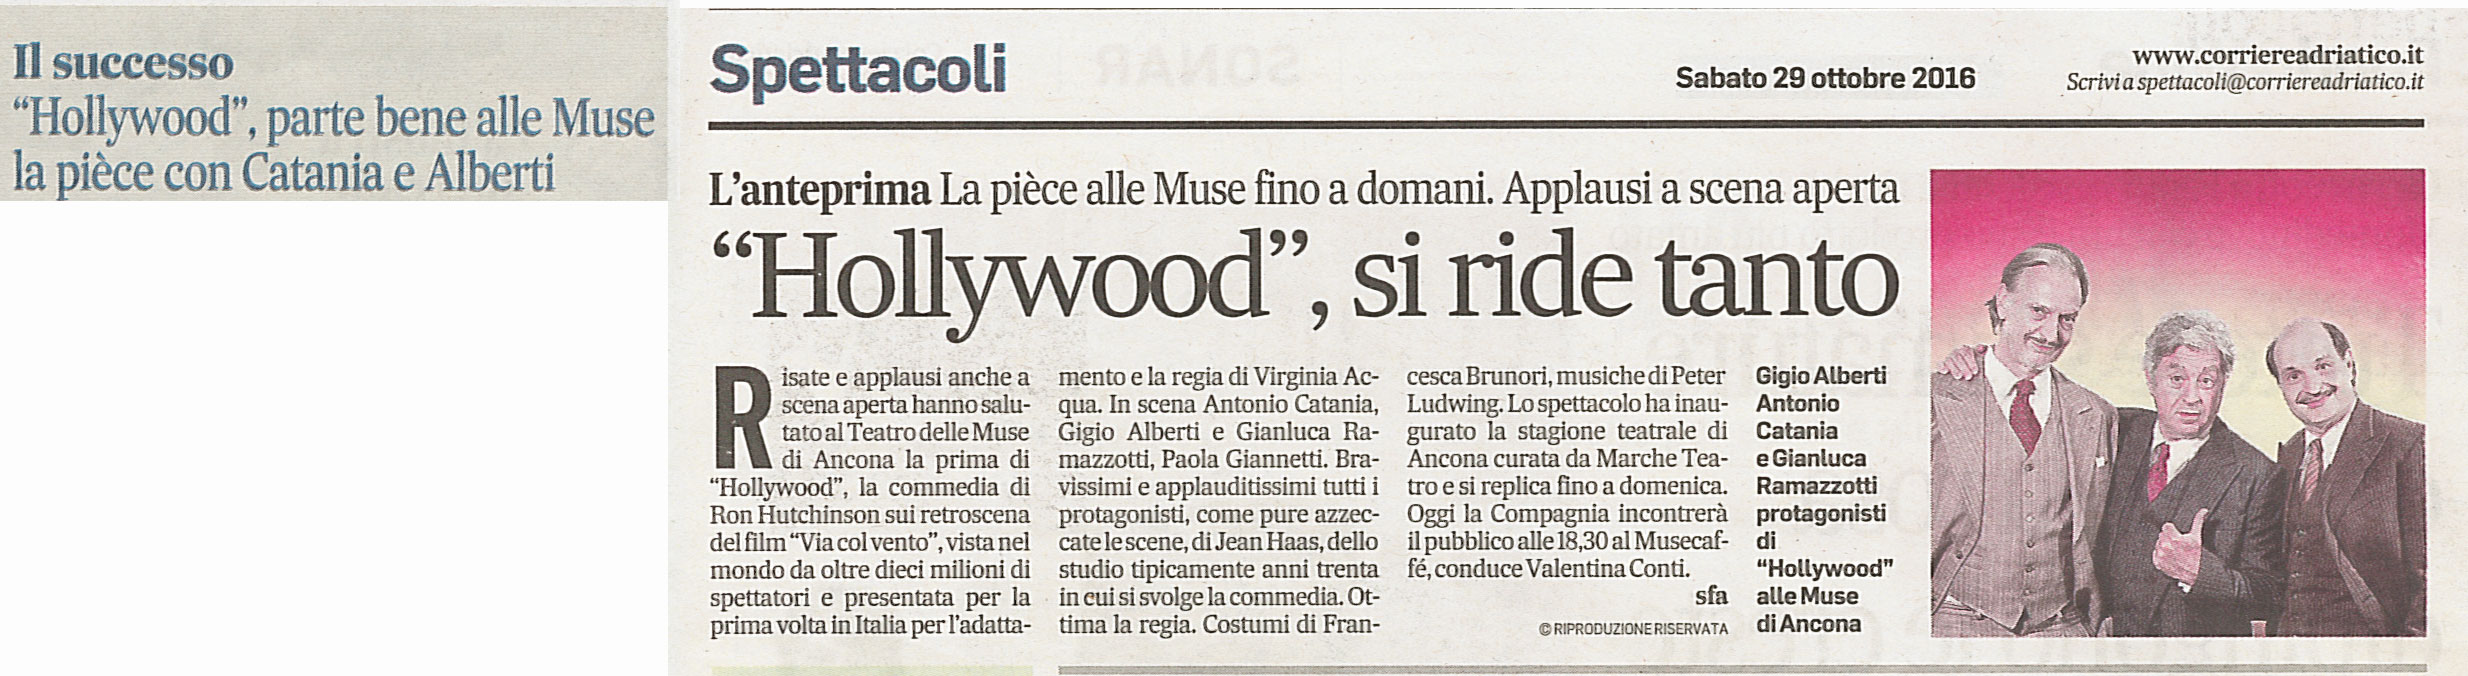 2016_10_29_hollywood-si-ride-tanto_corriere-adriatico